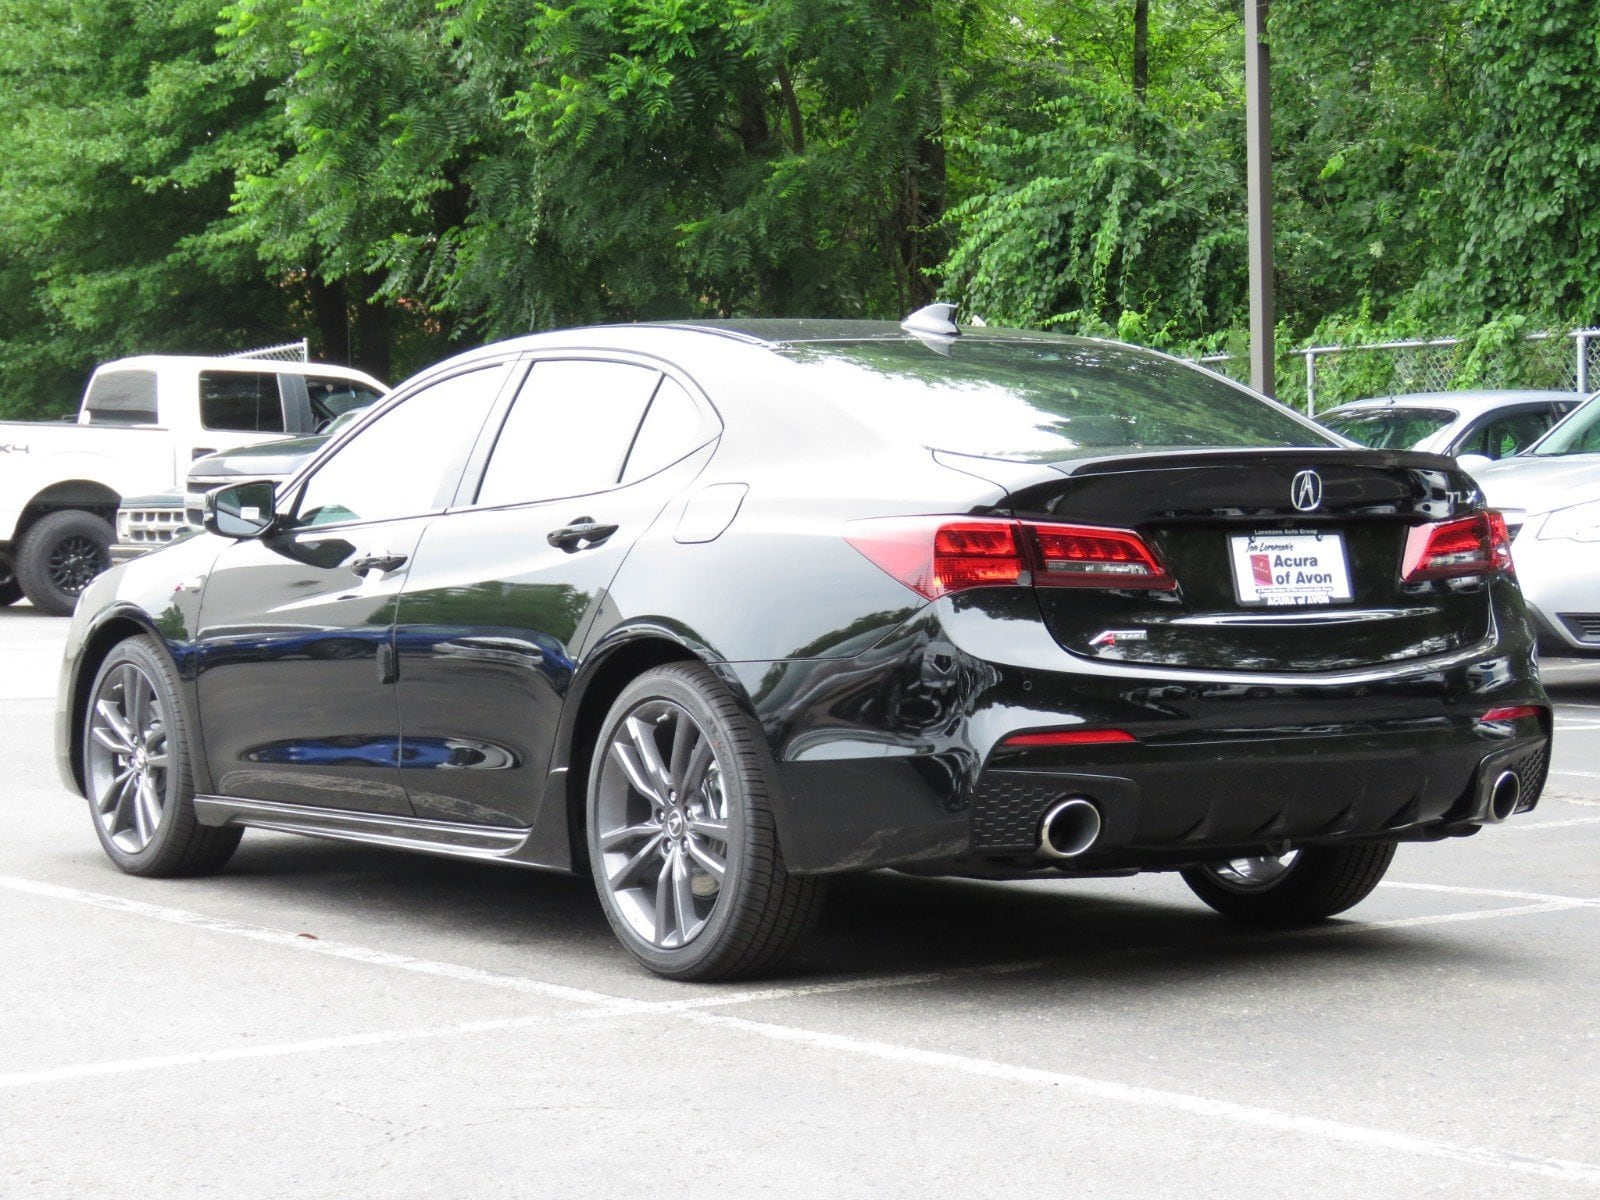 New 2019 Acura TLX 2 4 8 DCT P AWS with A SPEC Sedan in Canton